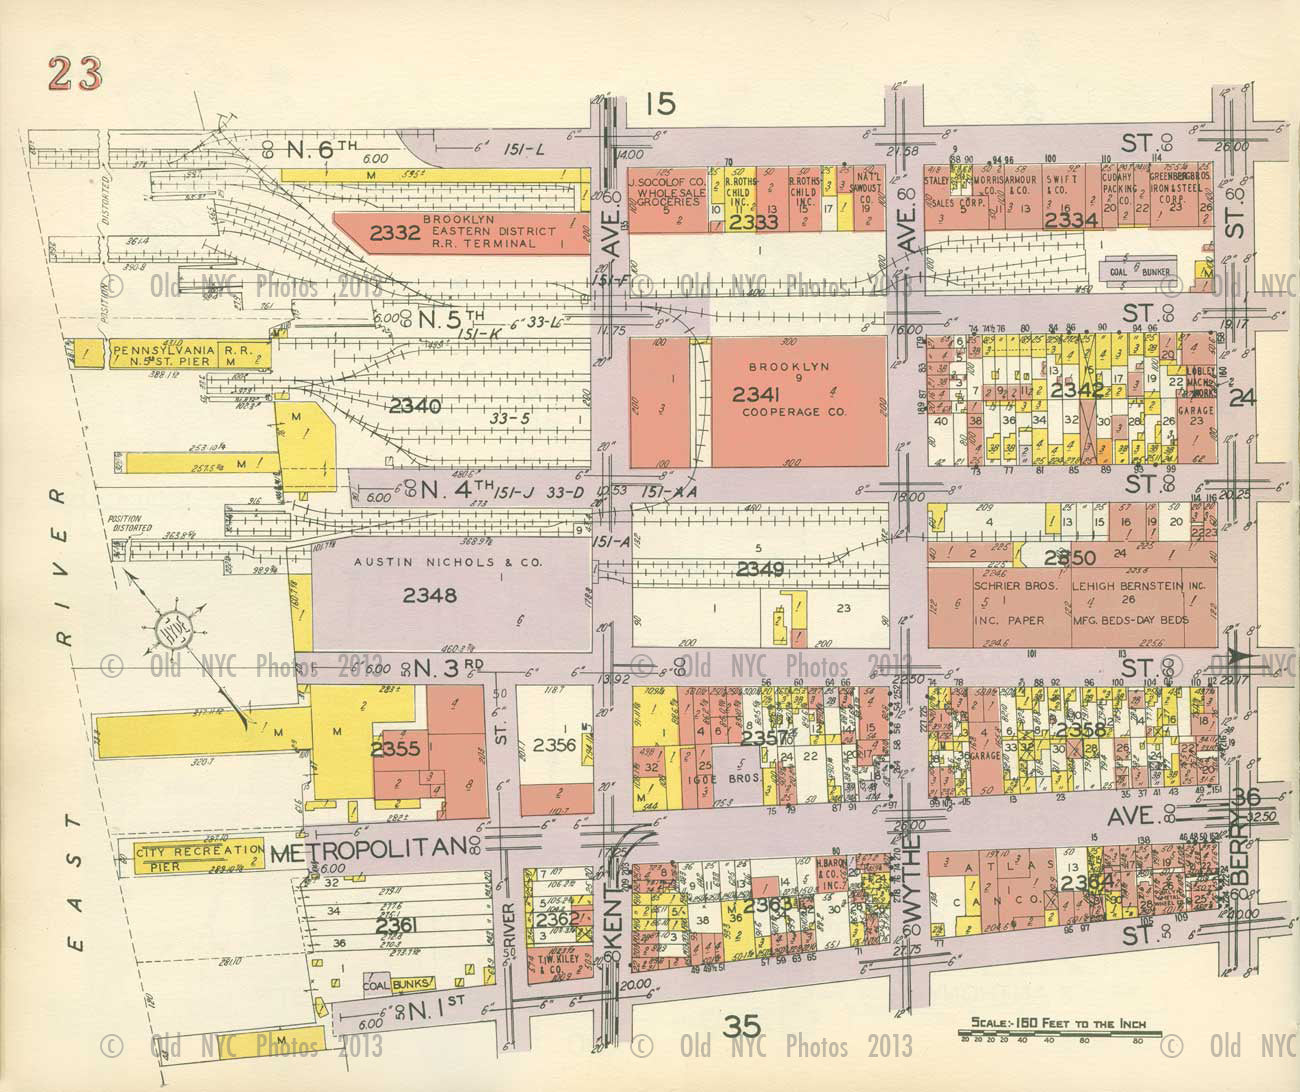 Map of Willamsburg Old Vintage Photos and Images